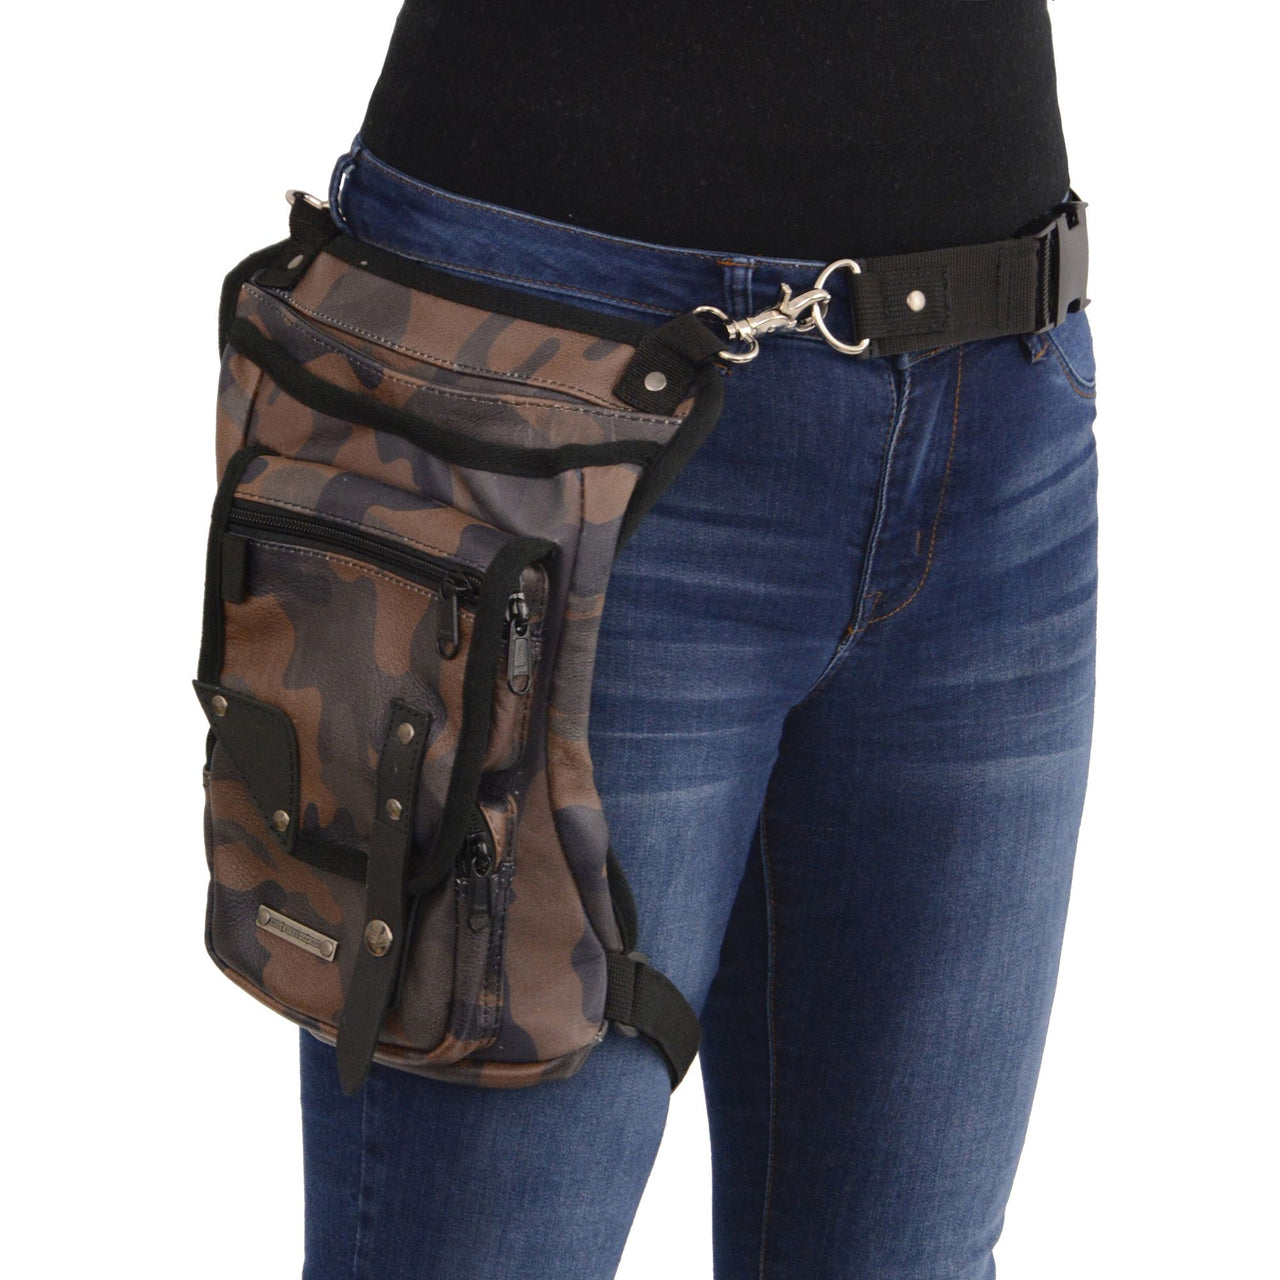 Conceal & Carry Camouflage Leather Thigh Bag w/ Waist Belt - HighwayLeather